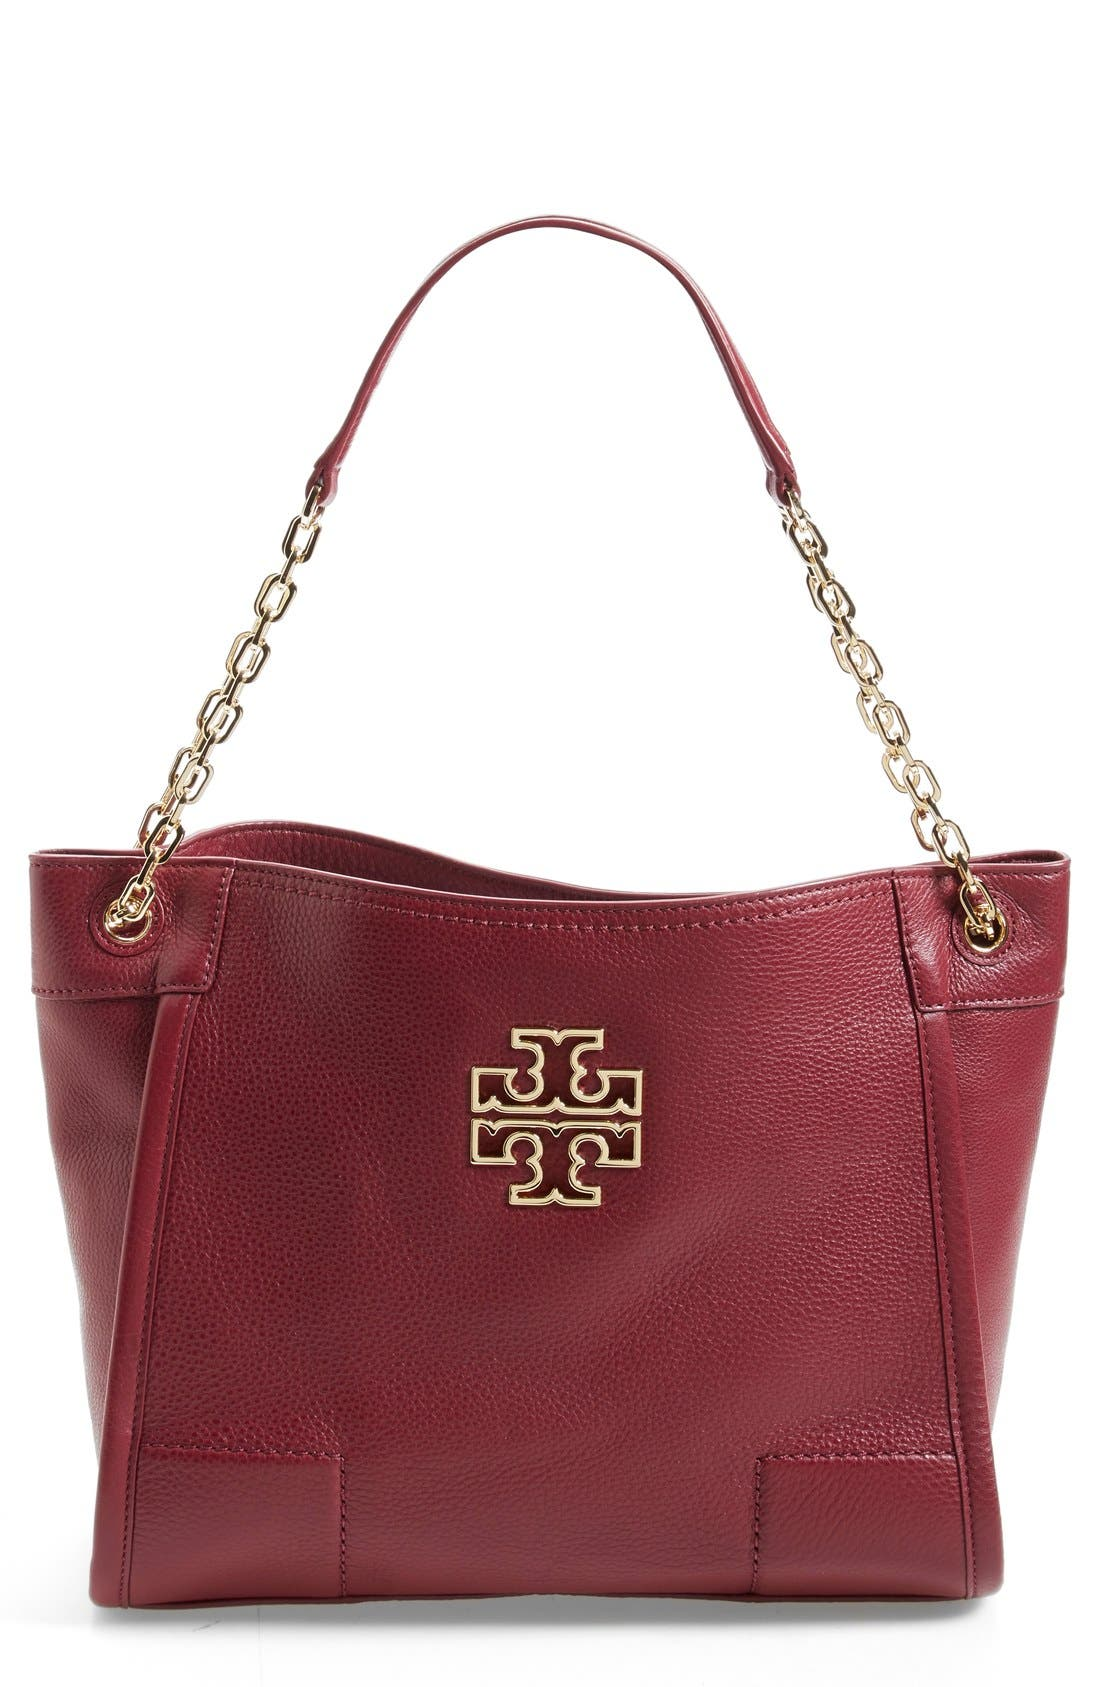 Main Image - Tory Burch 'Small Britten' Leather Slouchy Tote